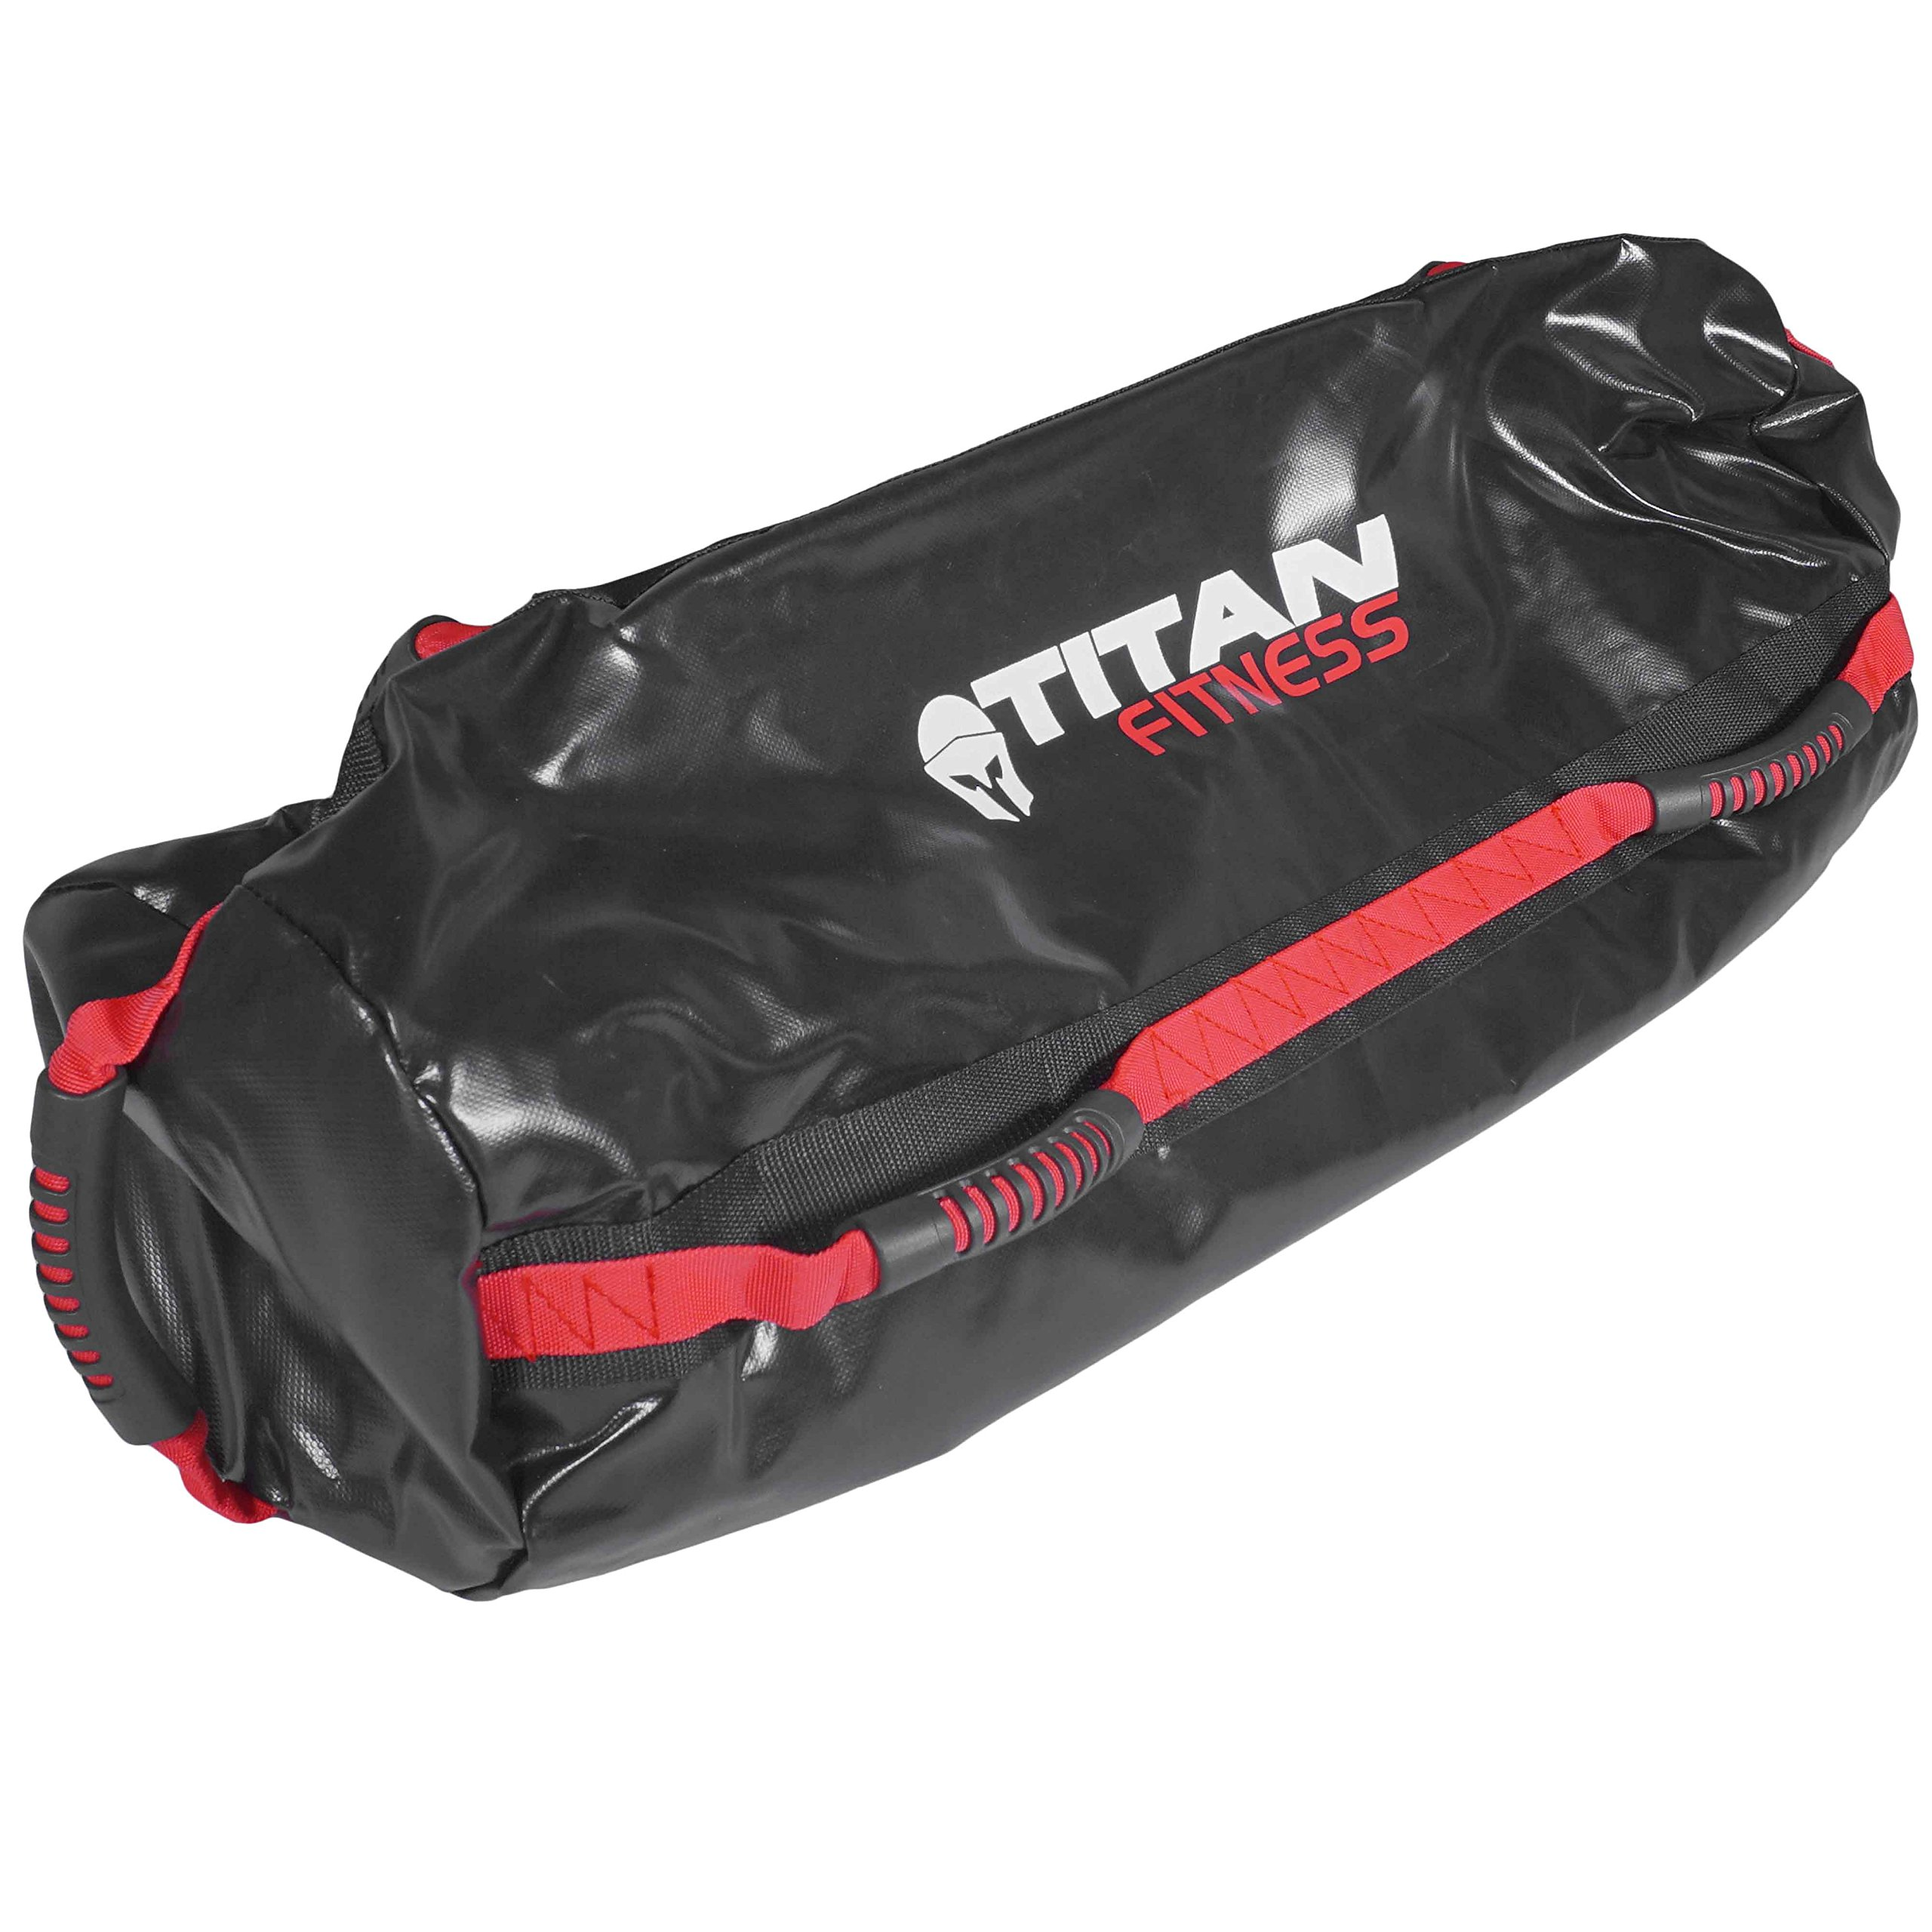 Titan Fitness 80 lb Heavy Duty Workout Weight Sandbag Exercise Training Bag by Titan Fitness (Image #1)